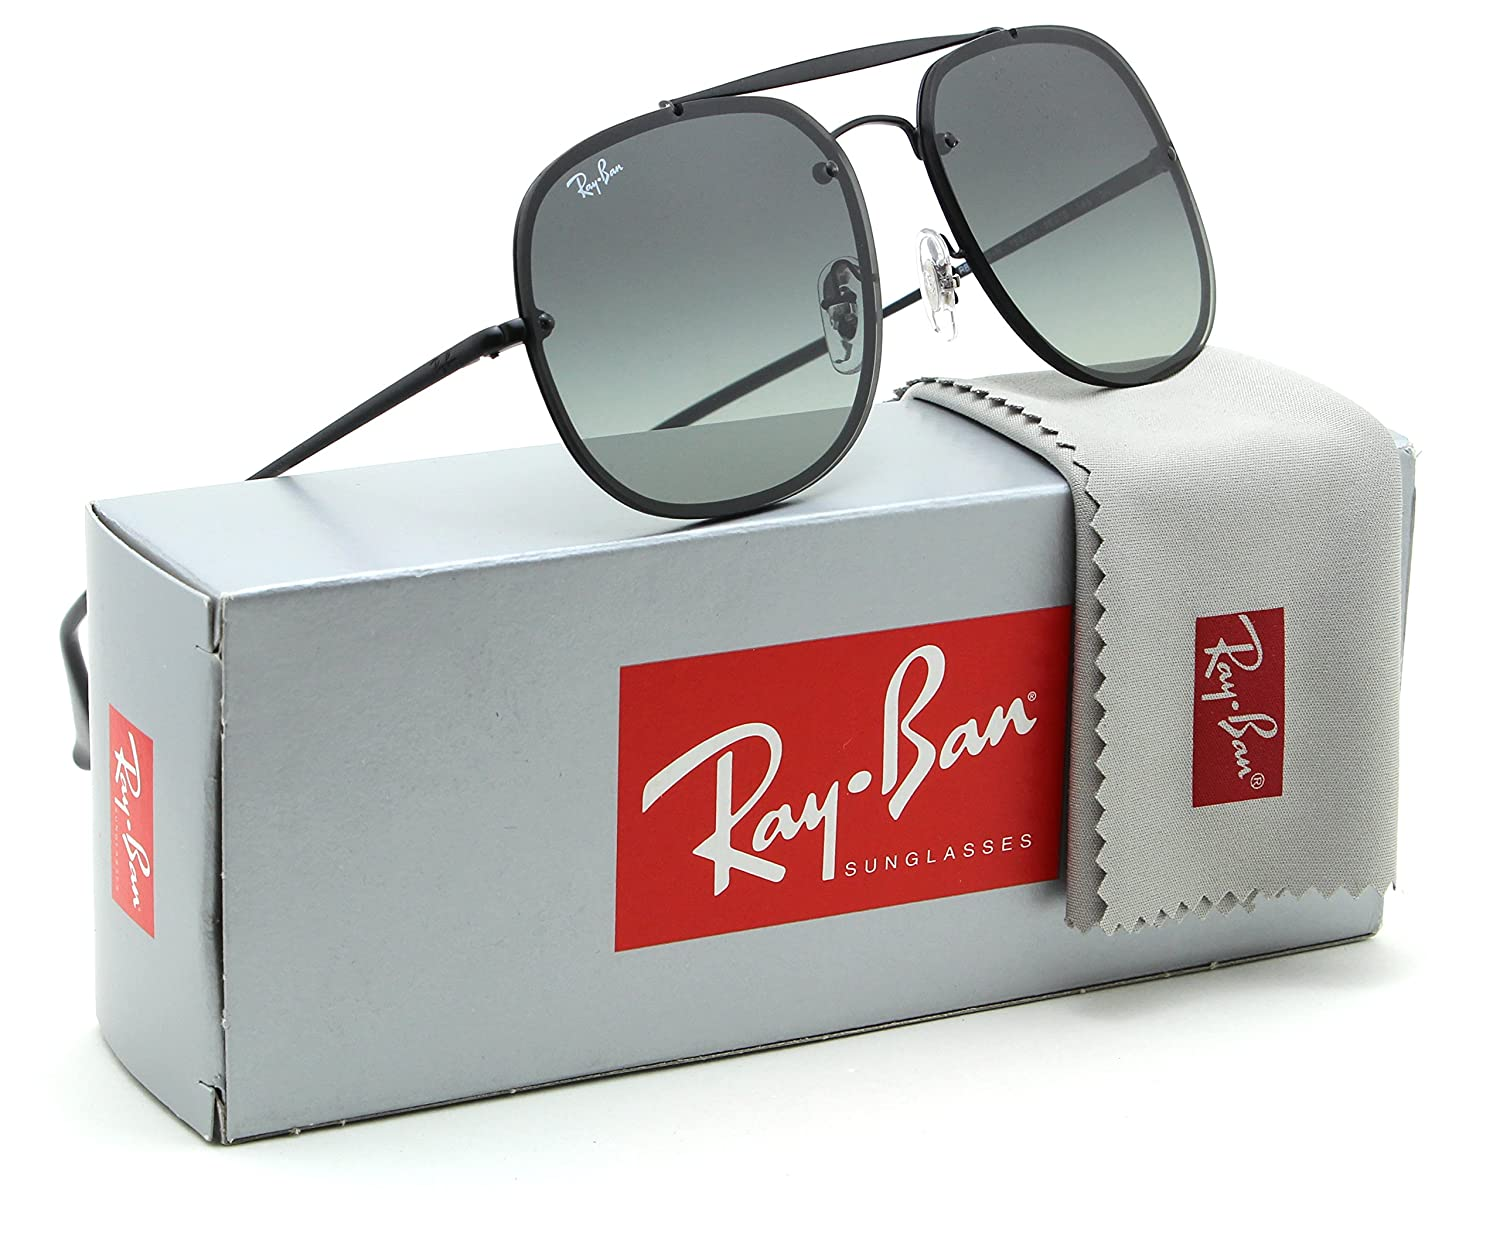 Amazon.com: Ray-Ban rb3583 N Blaze Genaral Unisex gradiente ...